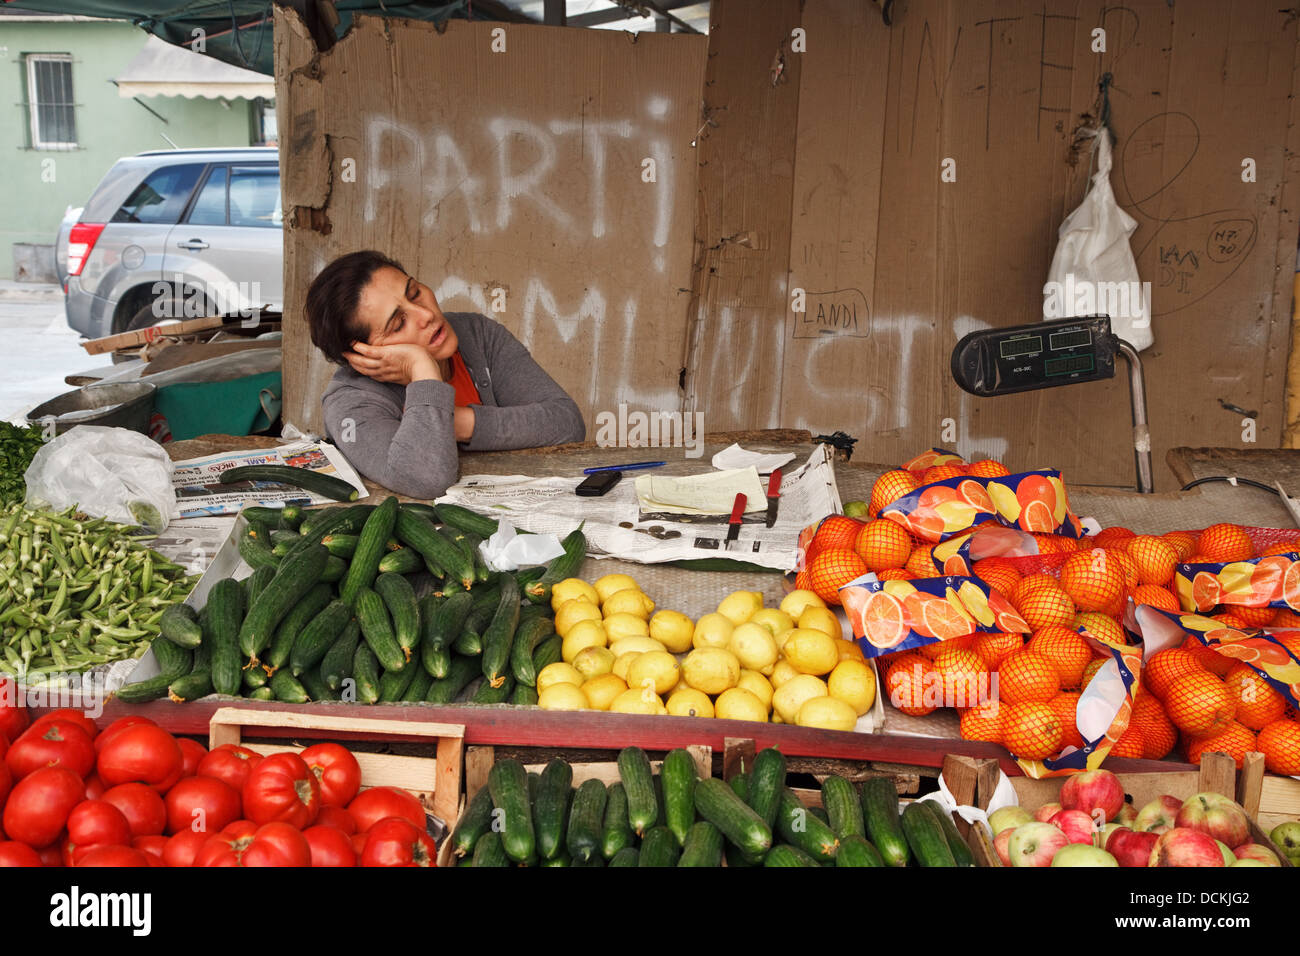 A vegetable and fruit seller sleeping at her stall in Tirana, Albania - Stock Image